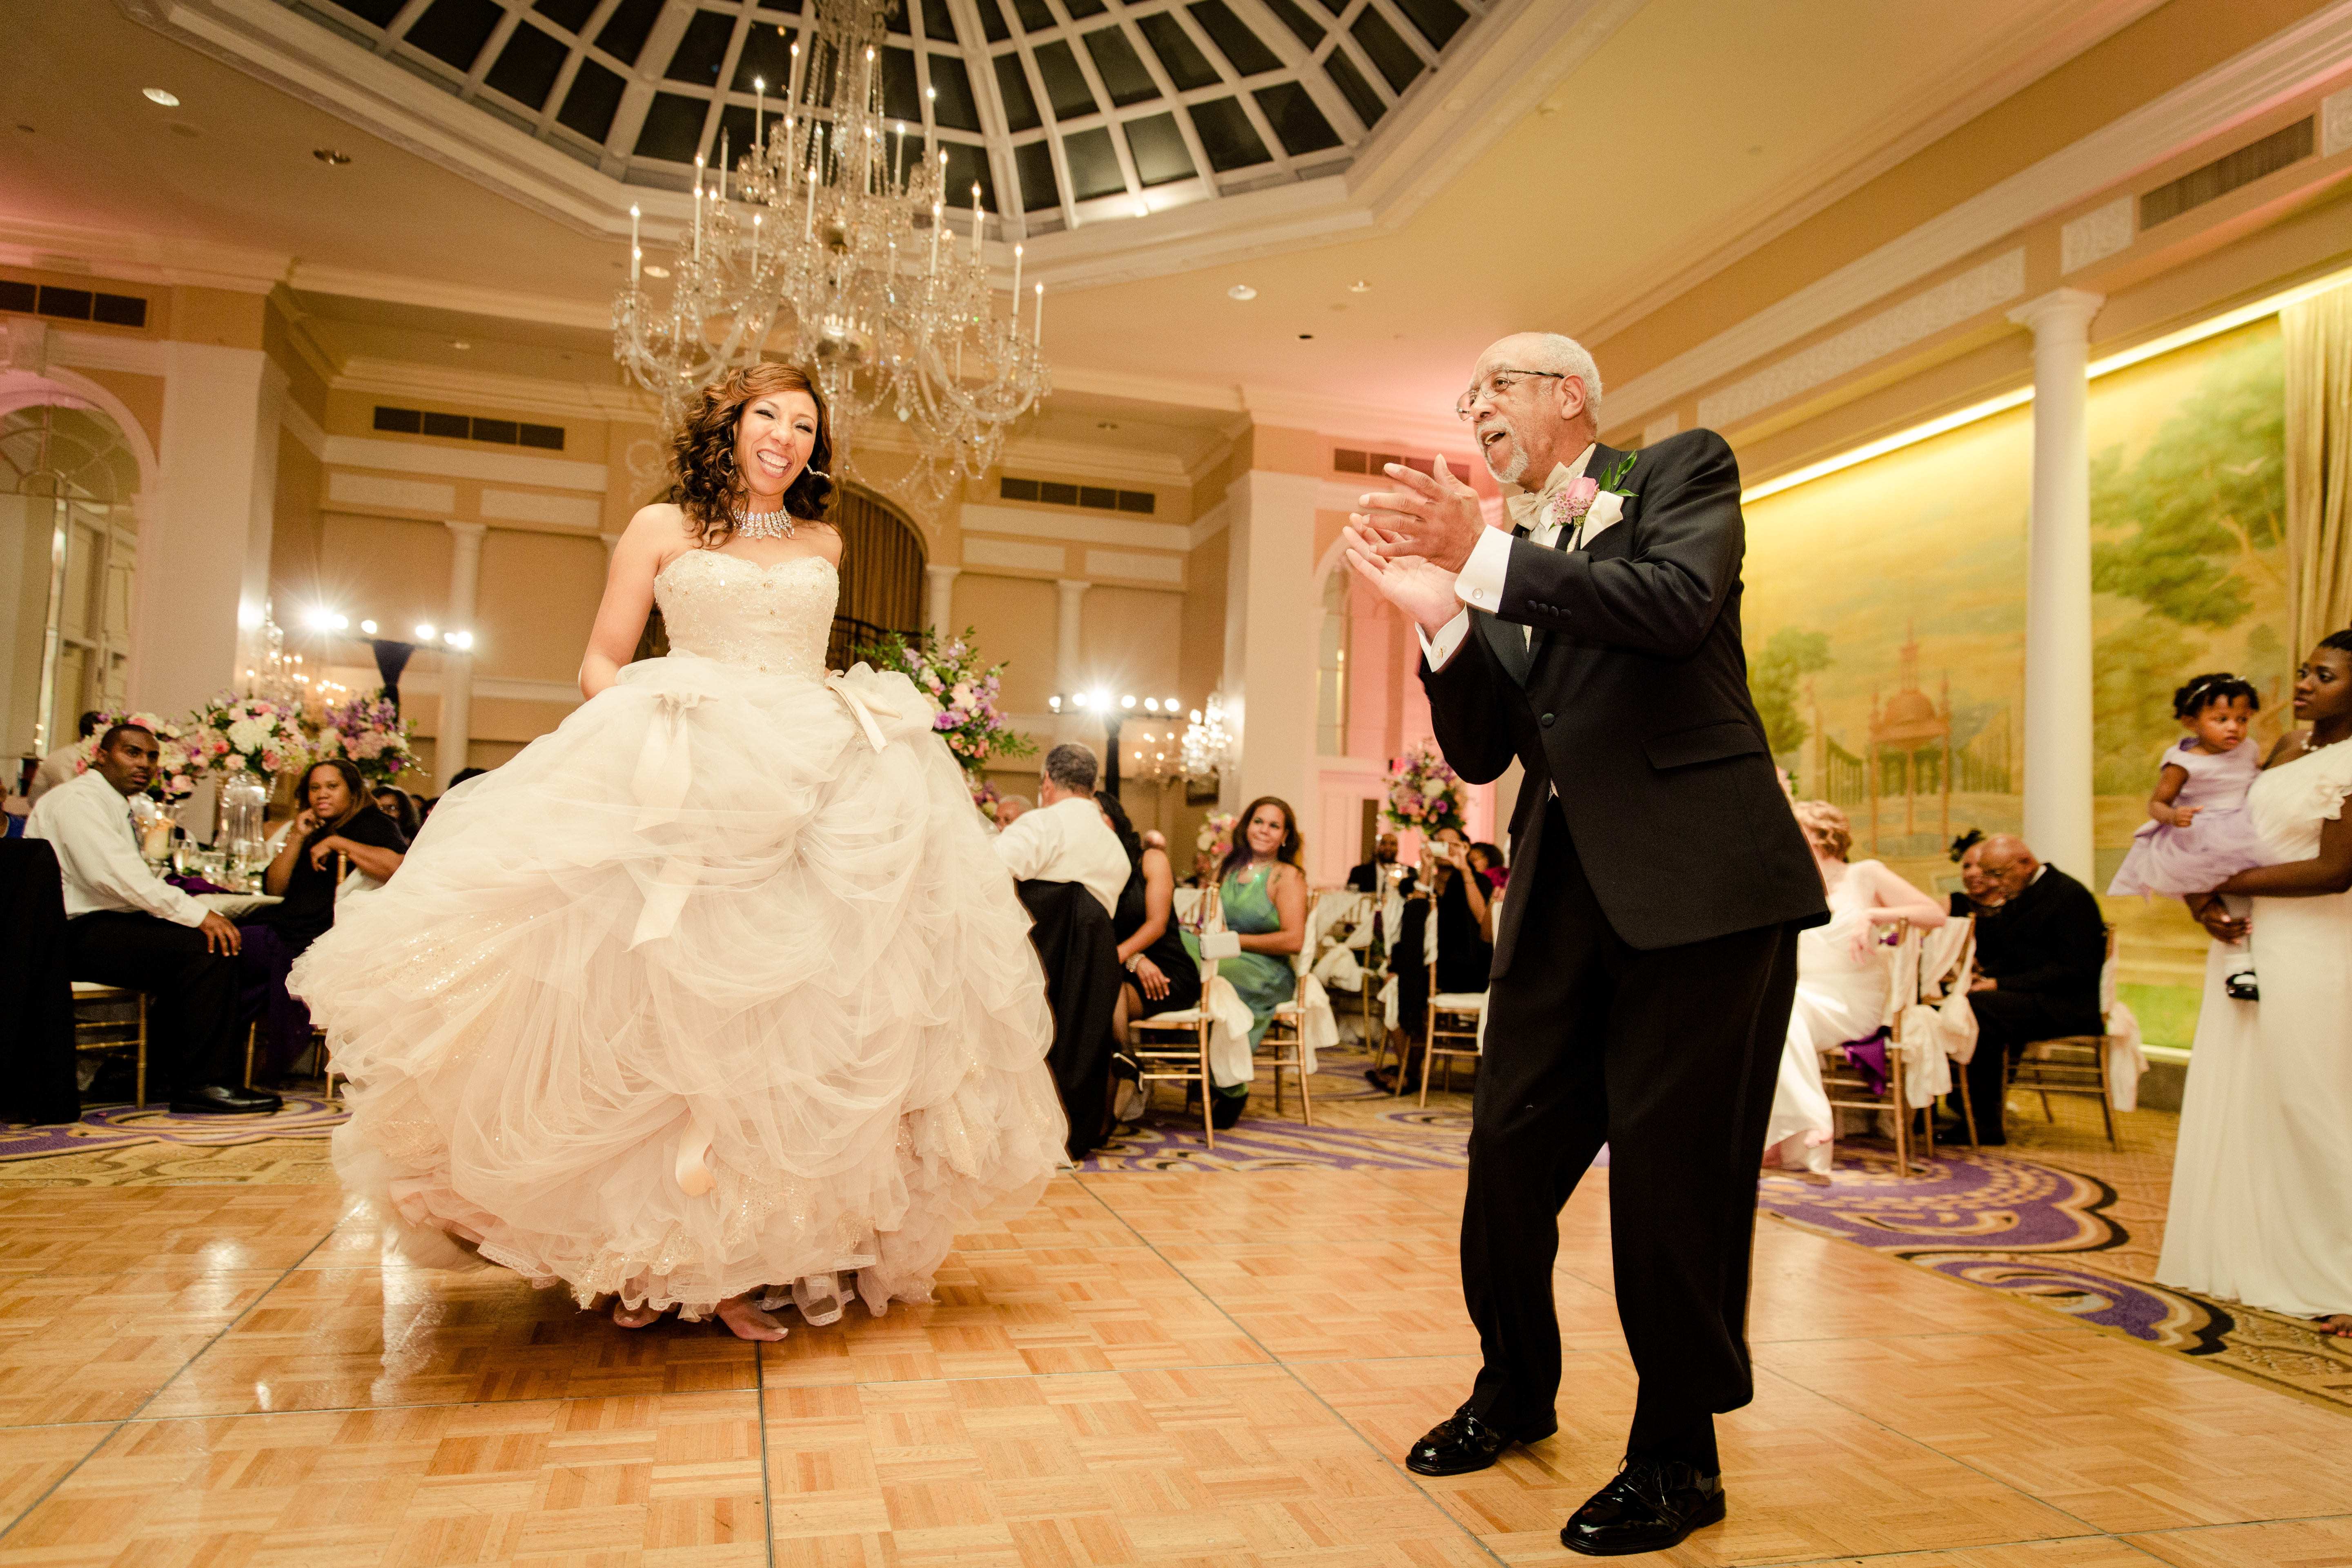 Ceremony, Reception, and Specialty Song Checklists and Dance Floor Sizing  Charts (Bundle)